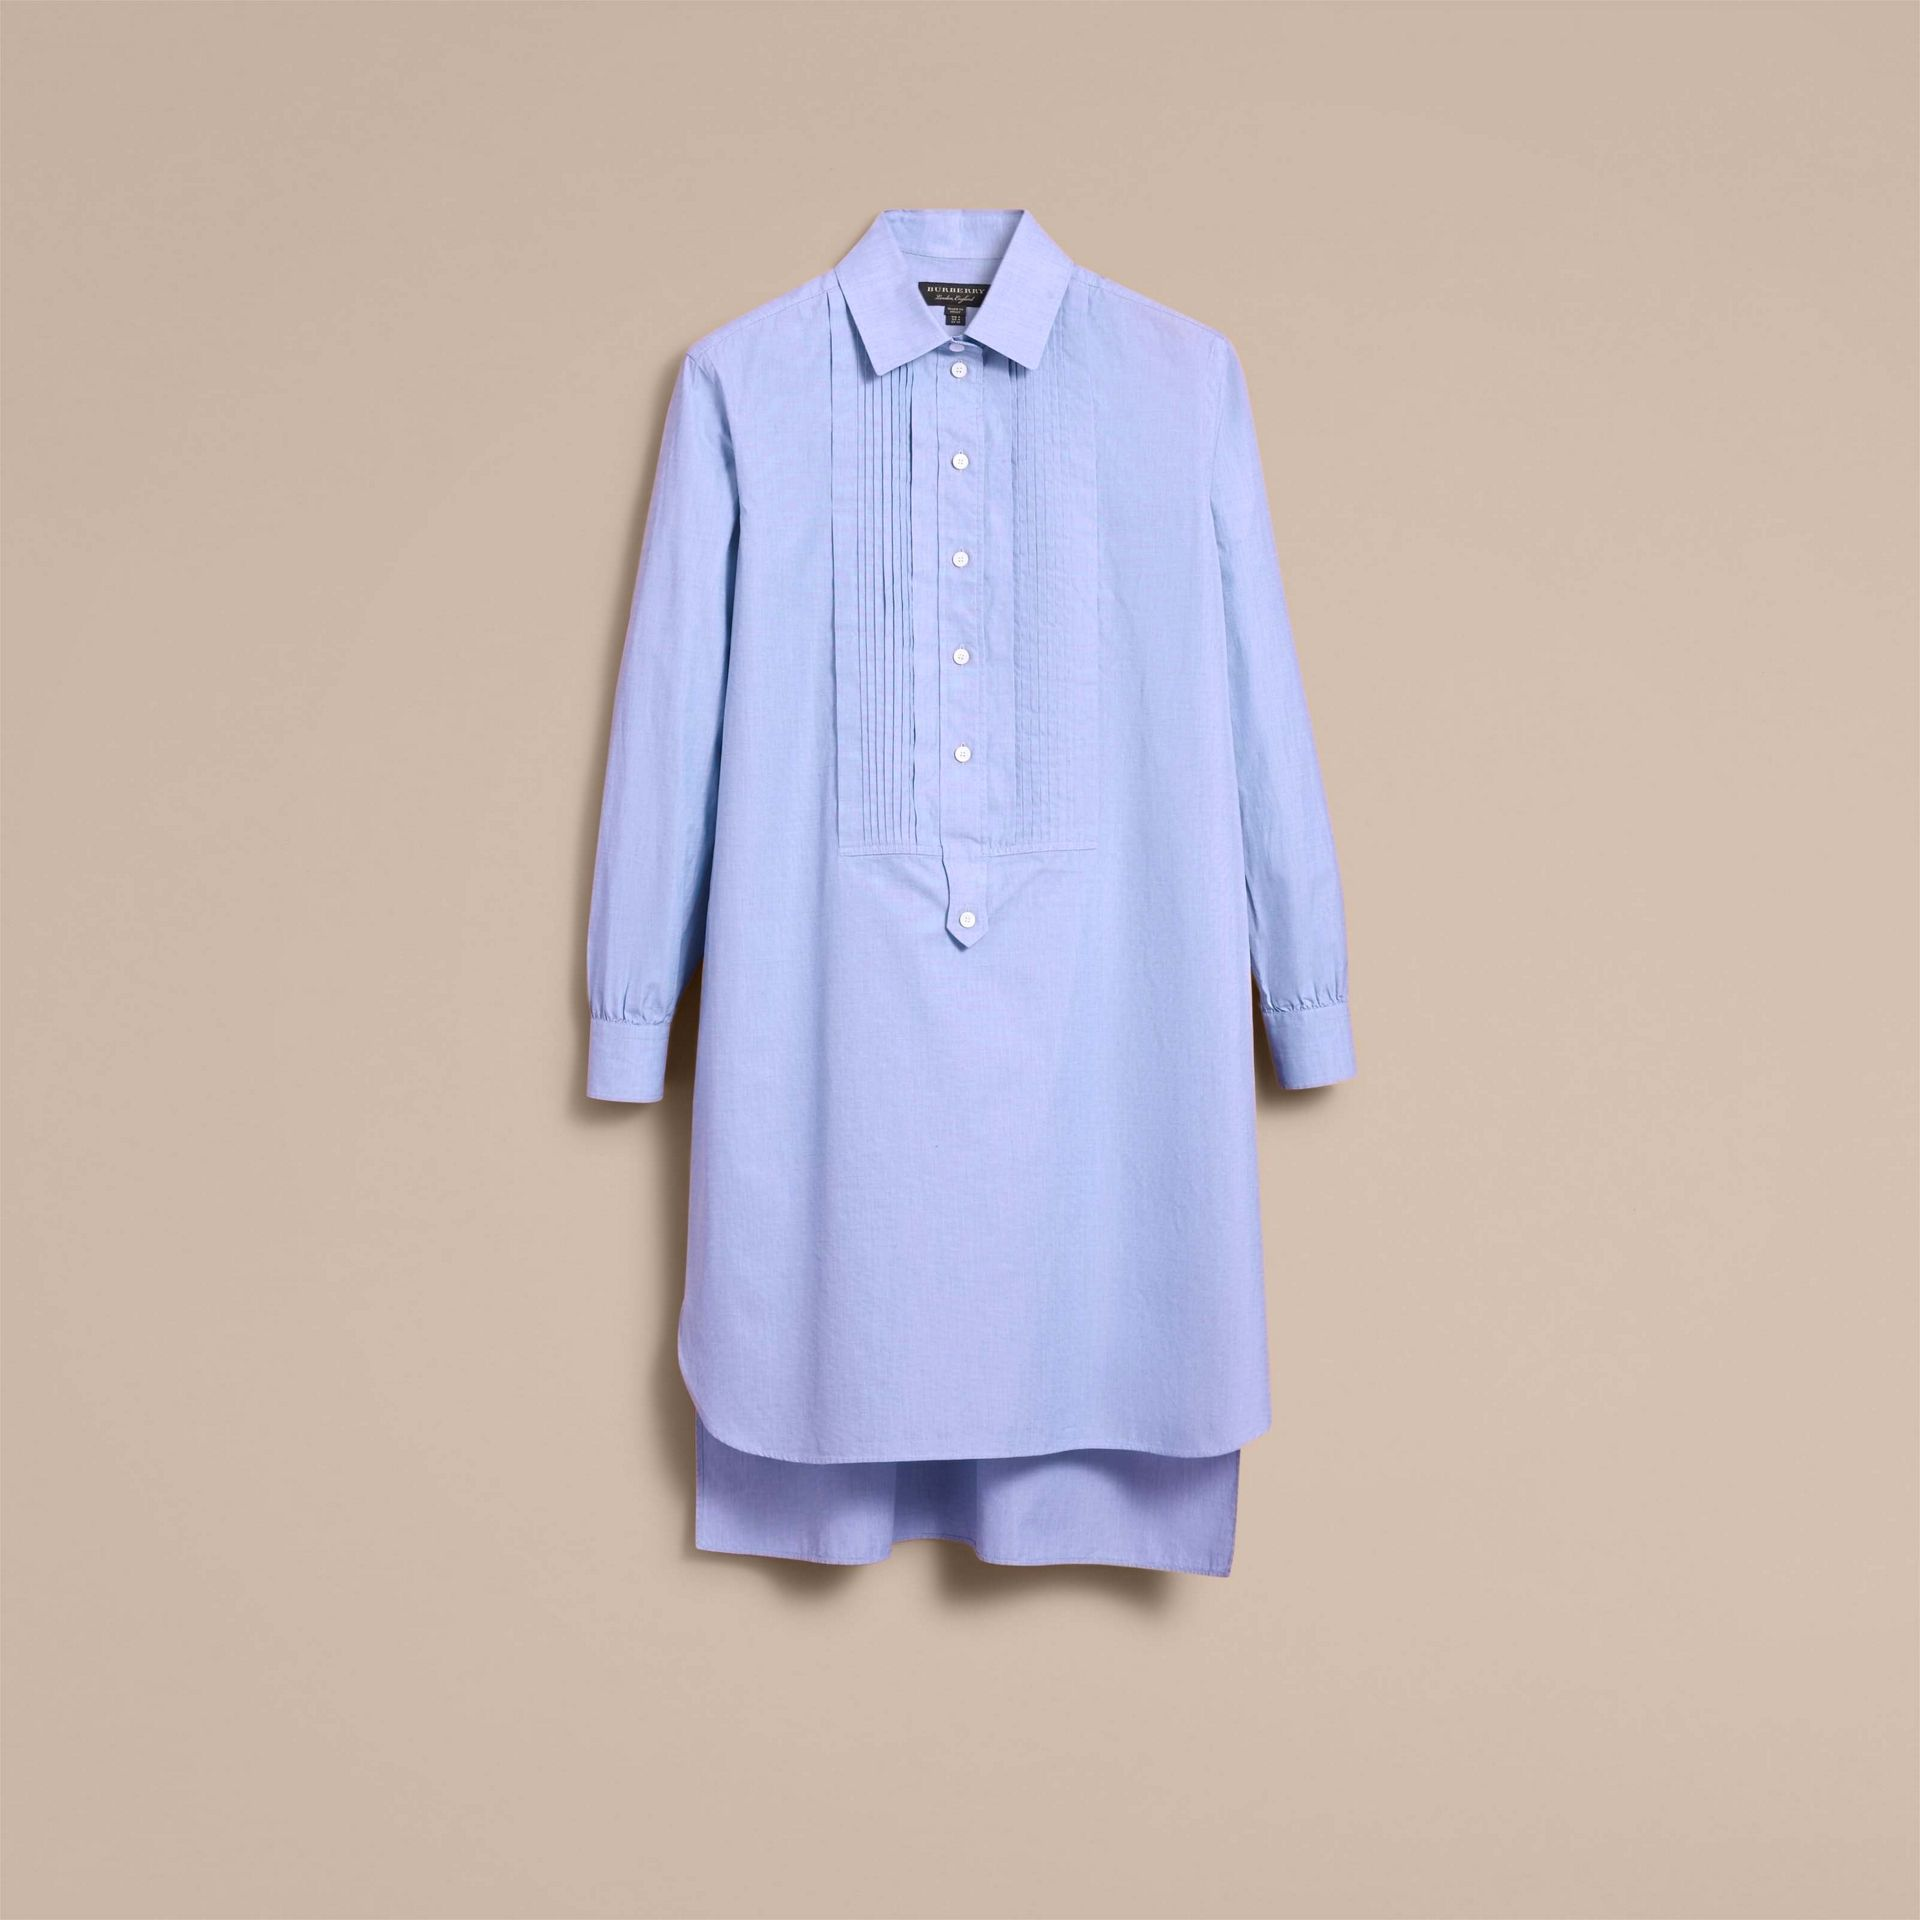 Robe chemise tunique en chambray de coton - Femme | Burberry - photo de la galerie 4